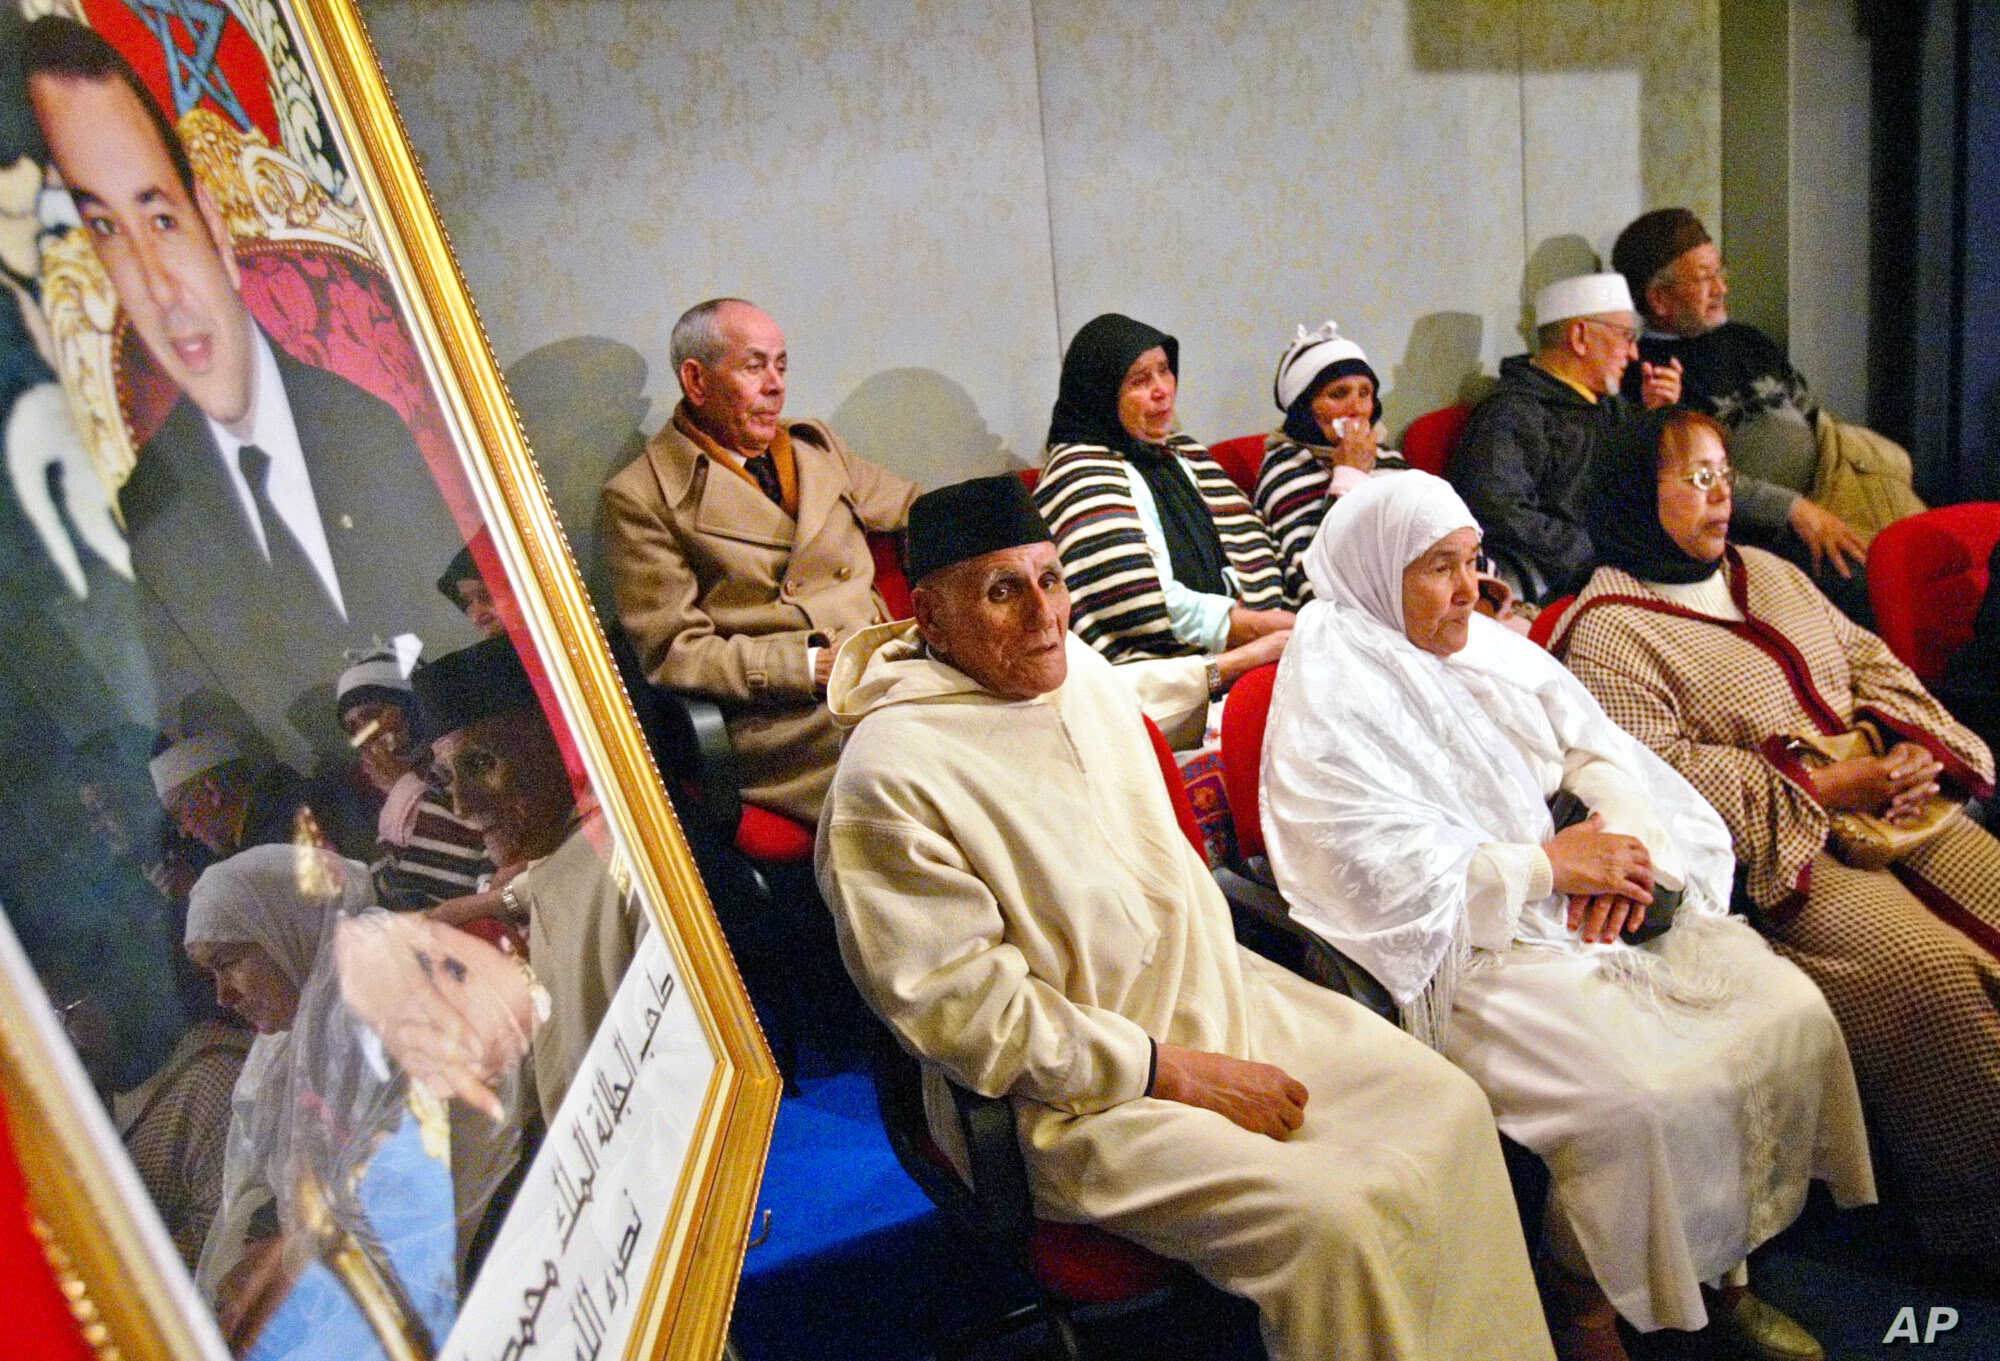 """Alleged victims of repression attend public hearings in Rabat of the Moroccan Equity and Reconciliation Commission, Dec. 21, 2004. The hearings gave victims of human rights abuses dating back decades an unprecedented platform and marking an """"importan"""